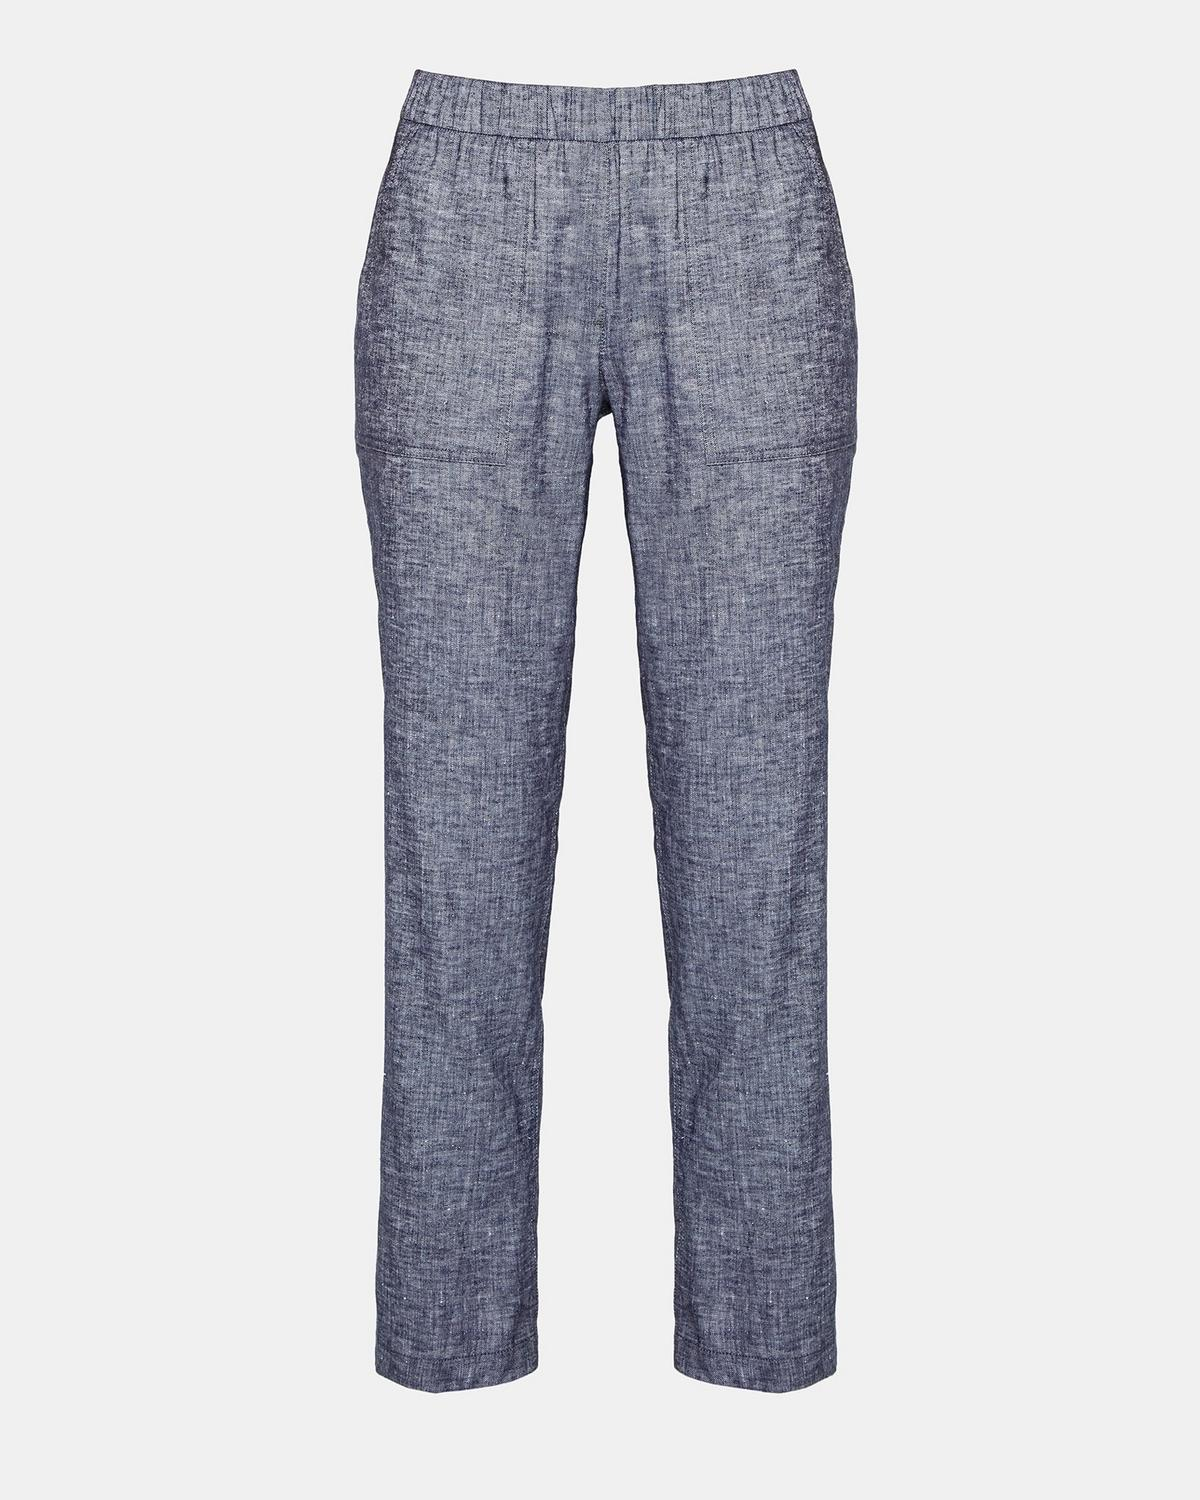 Stretch Linen Utility Pant